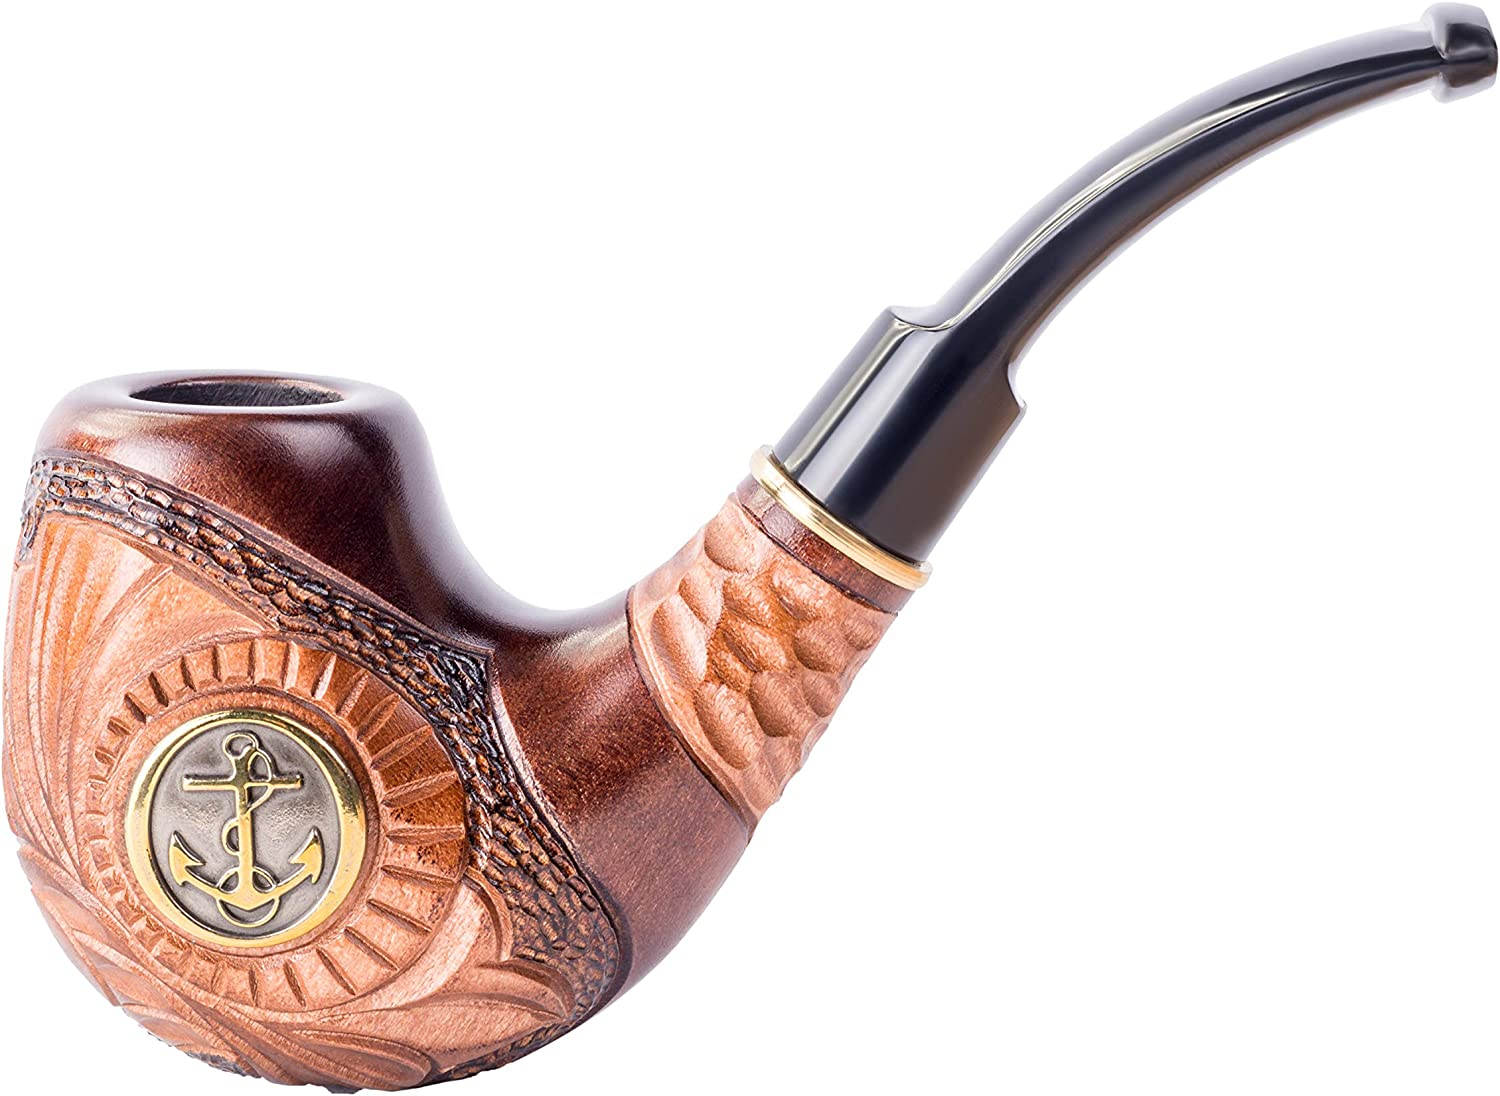 Dr. Watson - Wooden Tobacco 5 ☆ popular shopping Smoking 9mm Carved Hand Pipe Fits